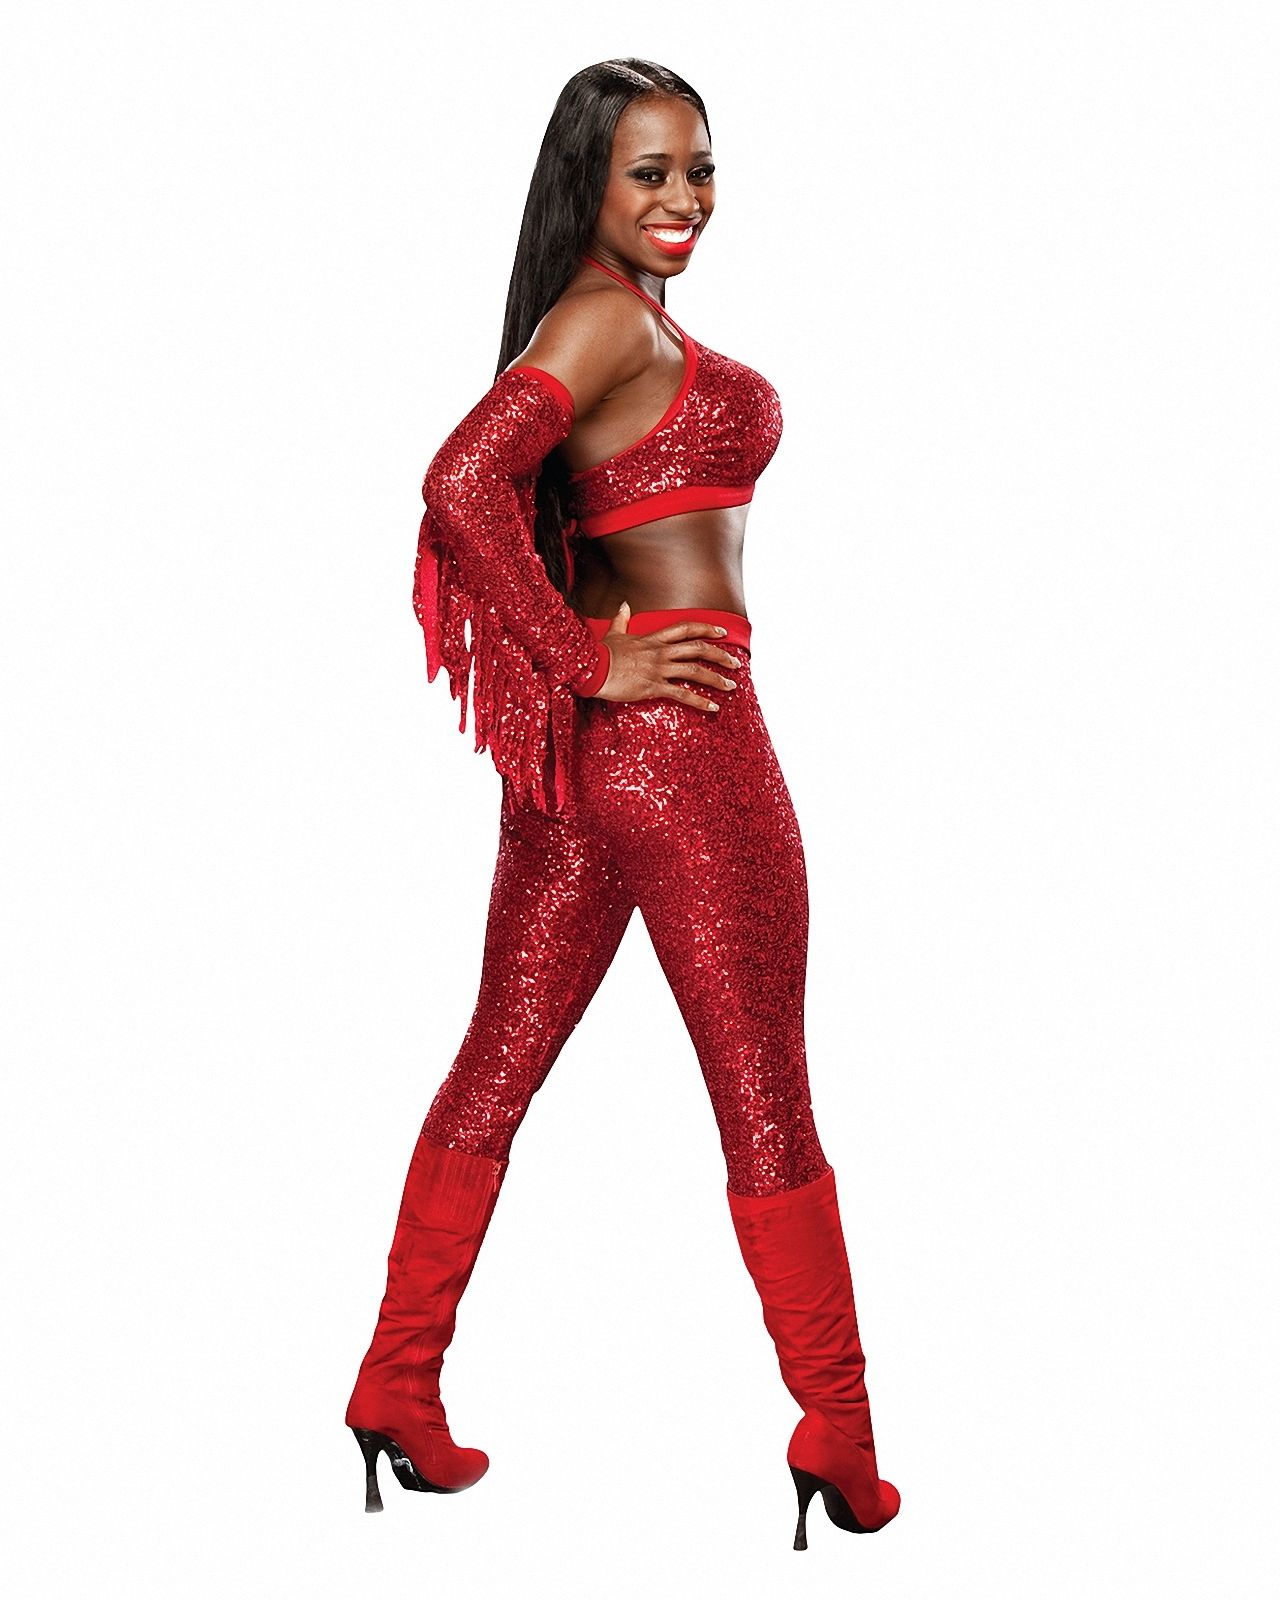 Naomi Hot in Red